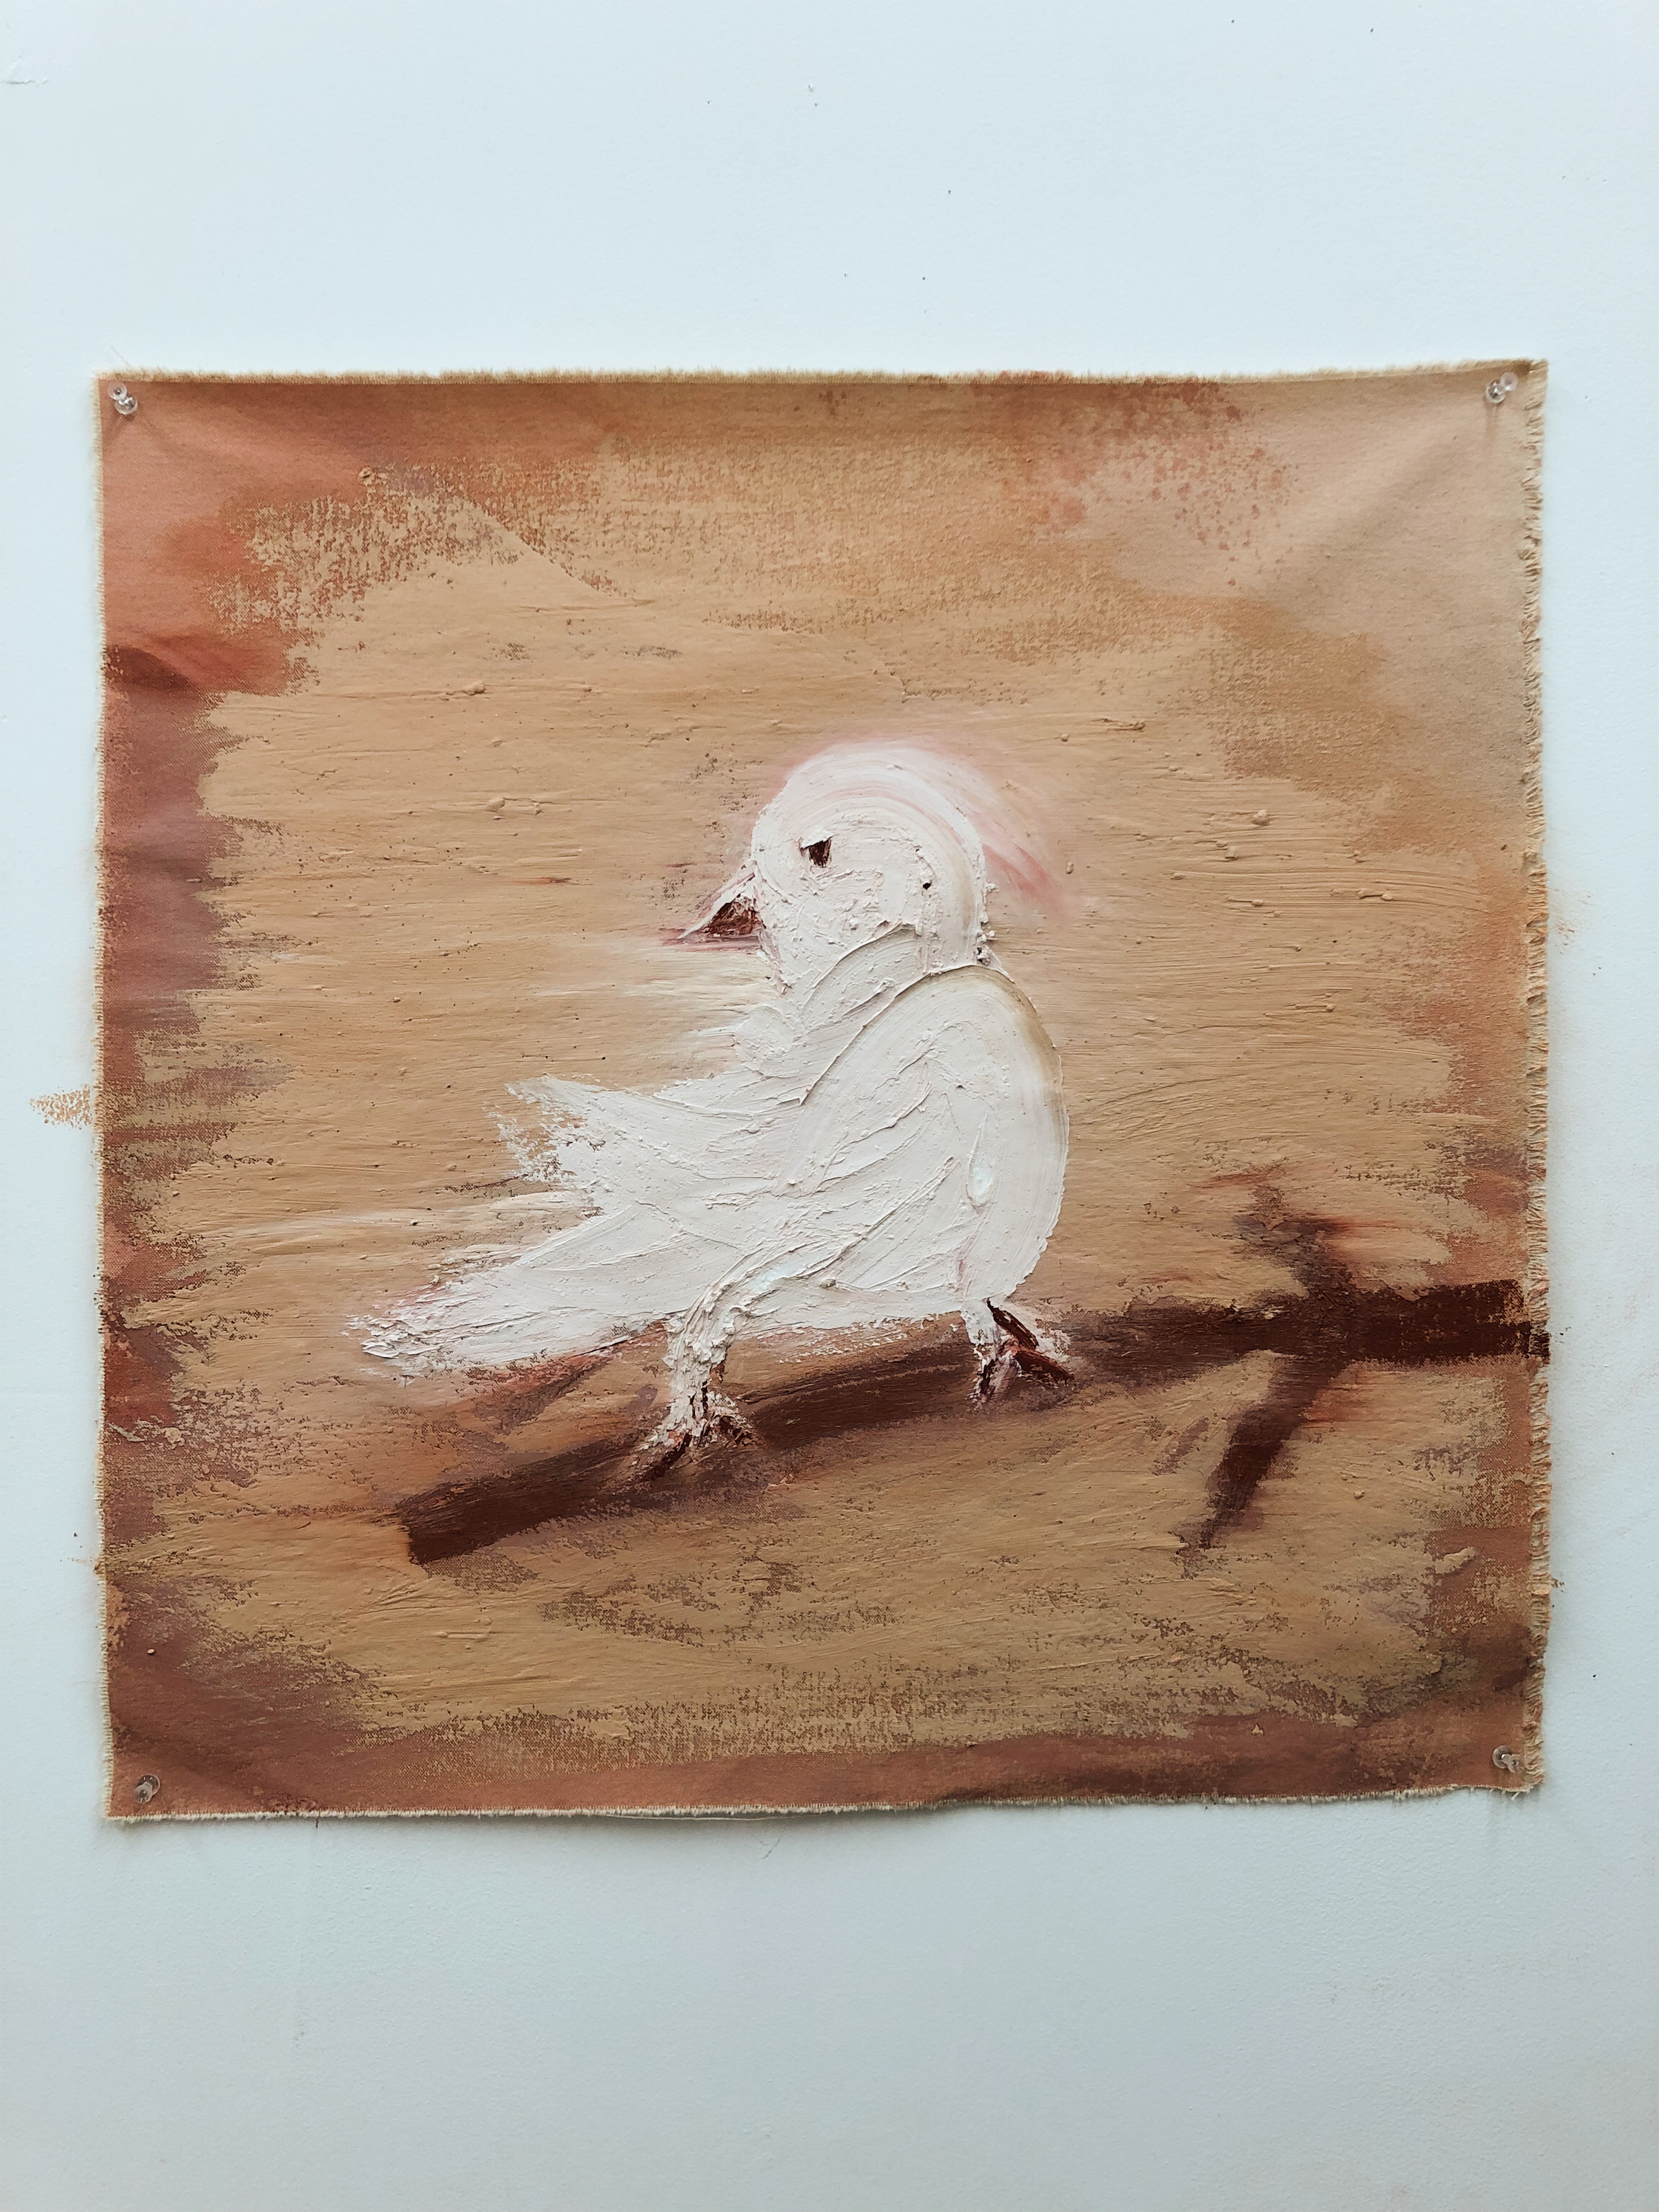 Bird with Albinism